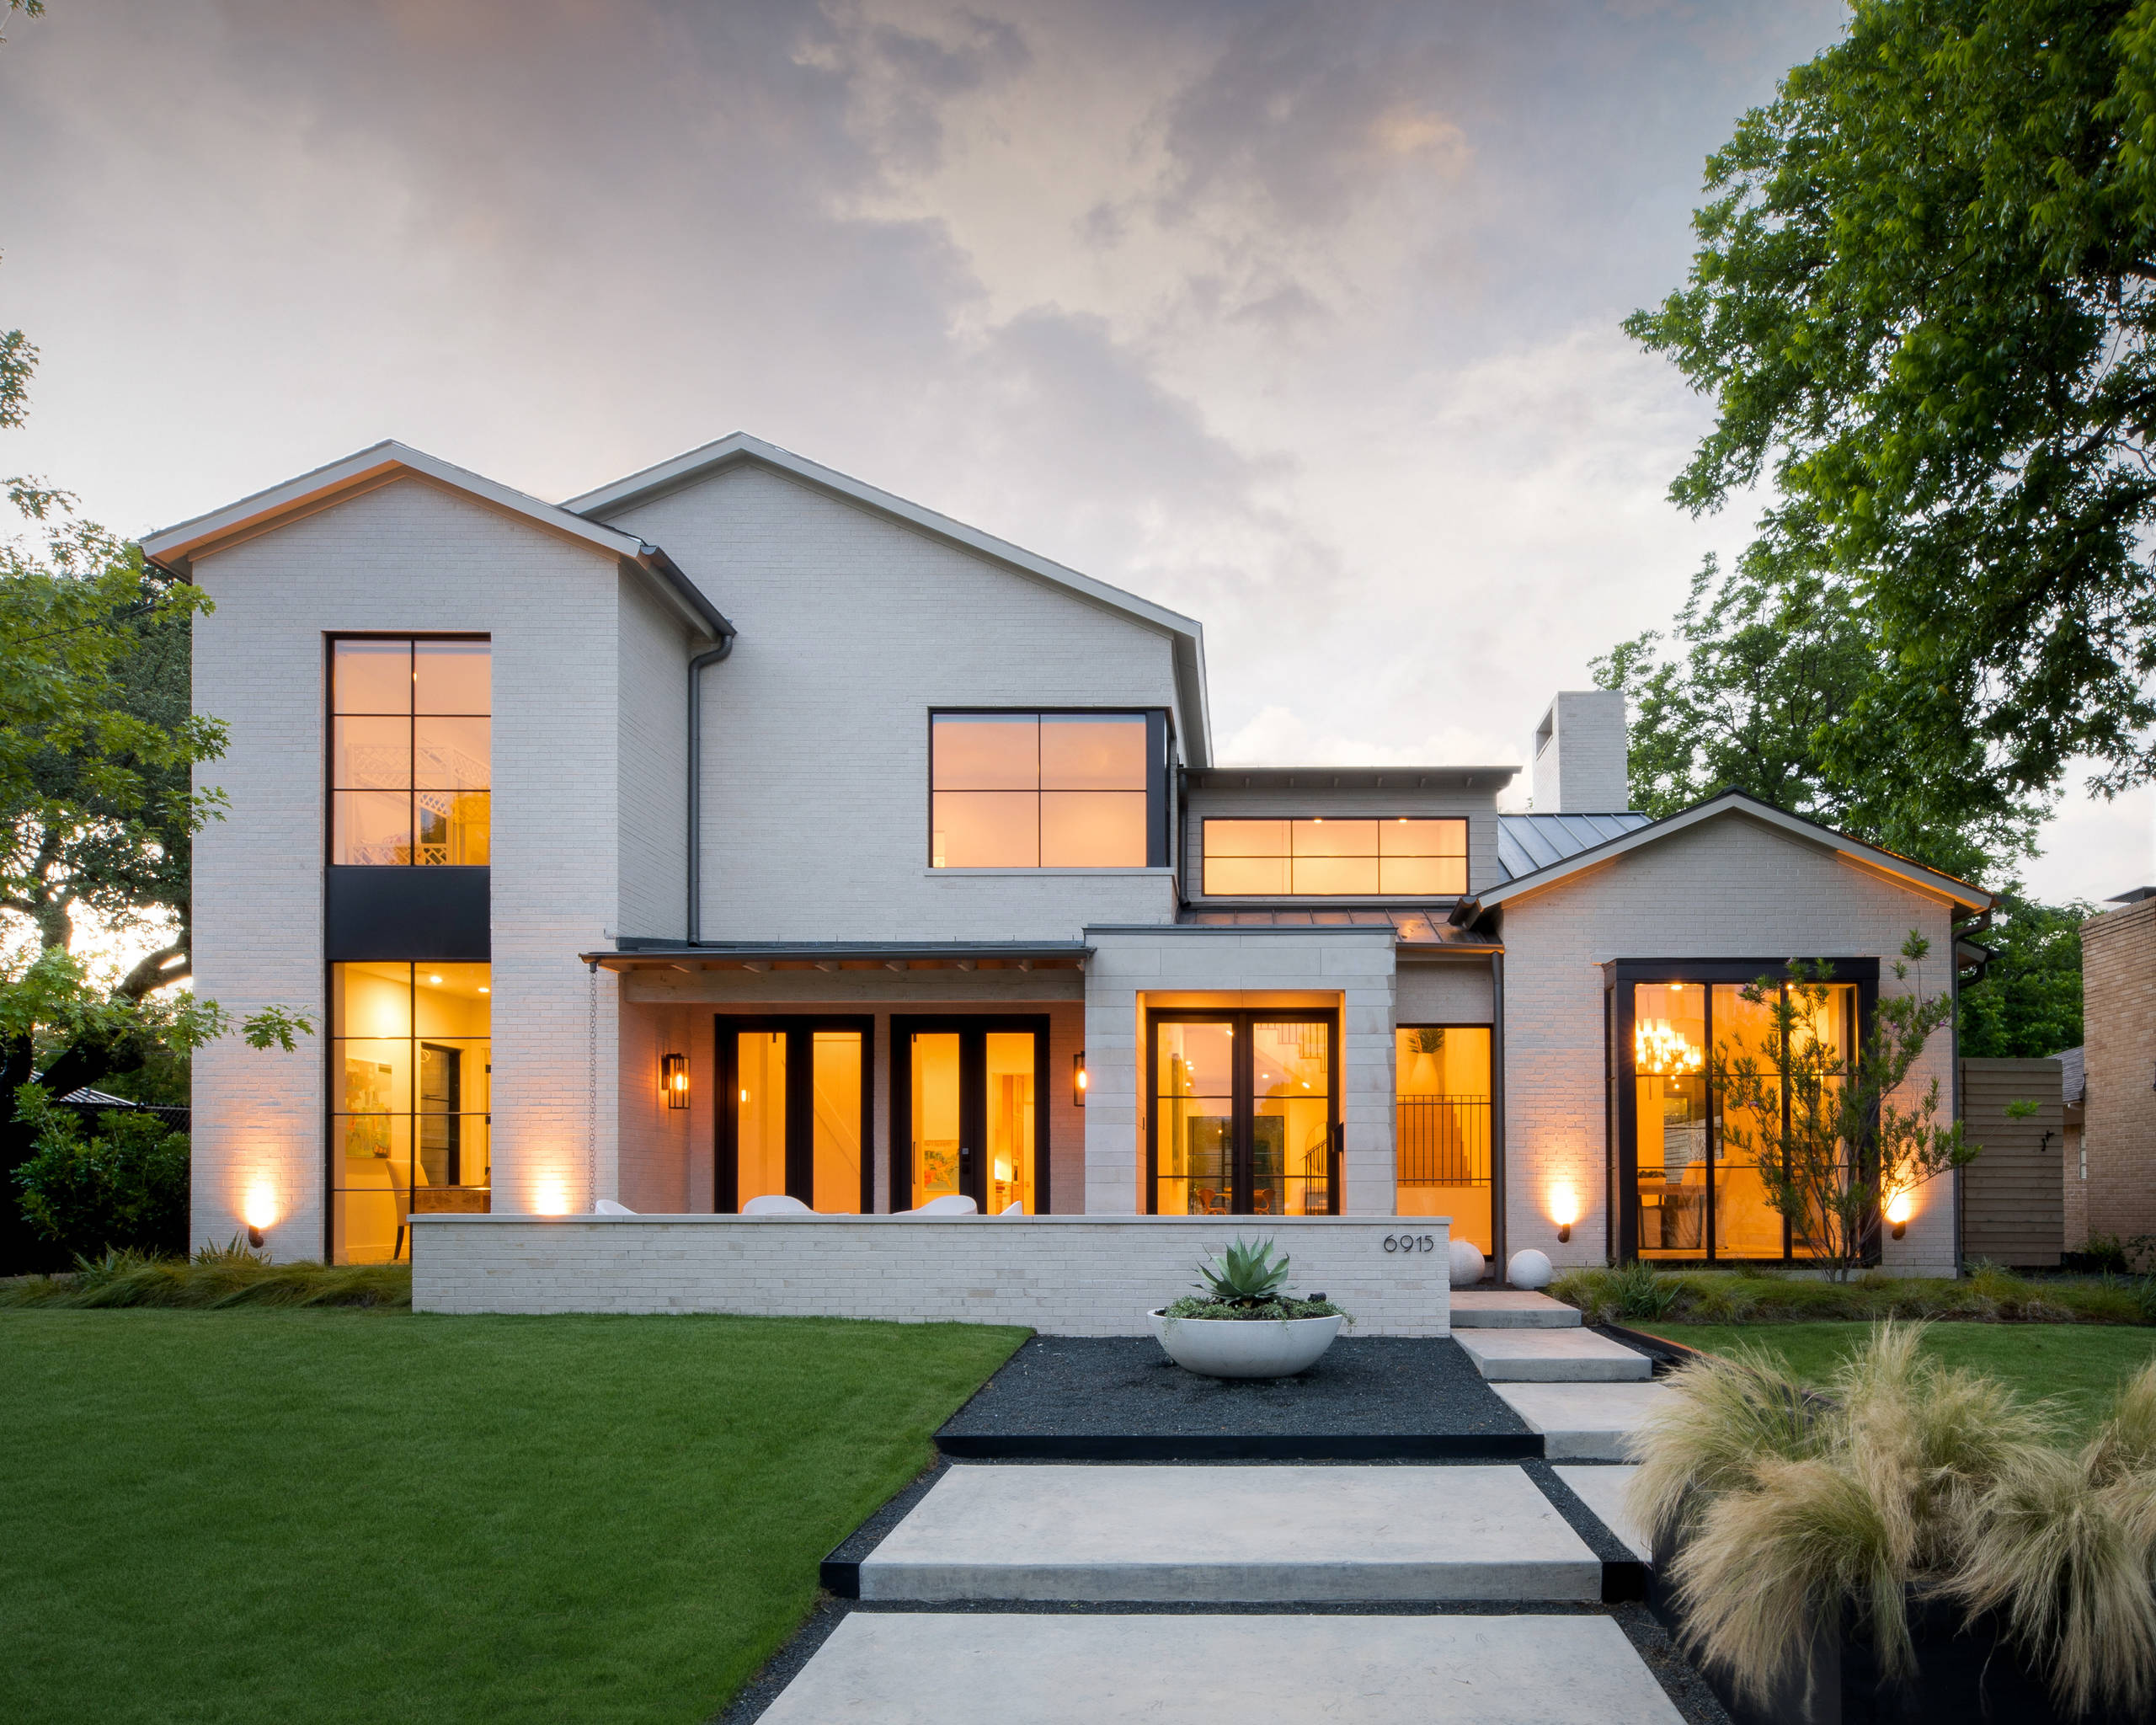 75 Beautiful Stone Exterior Home Pictures Ideas April 2021 Houzz